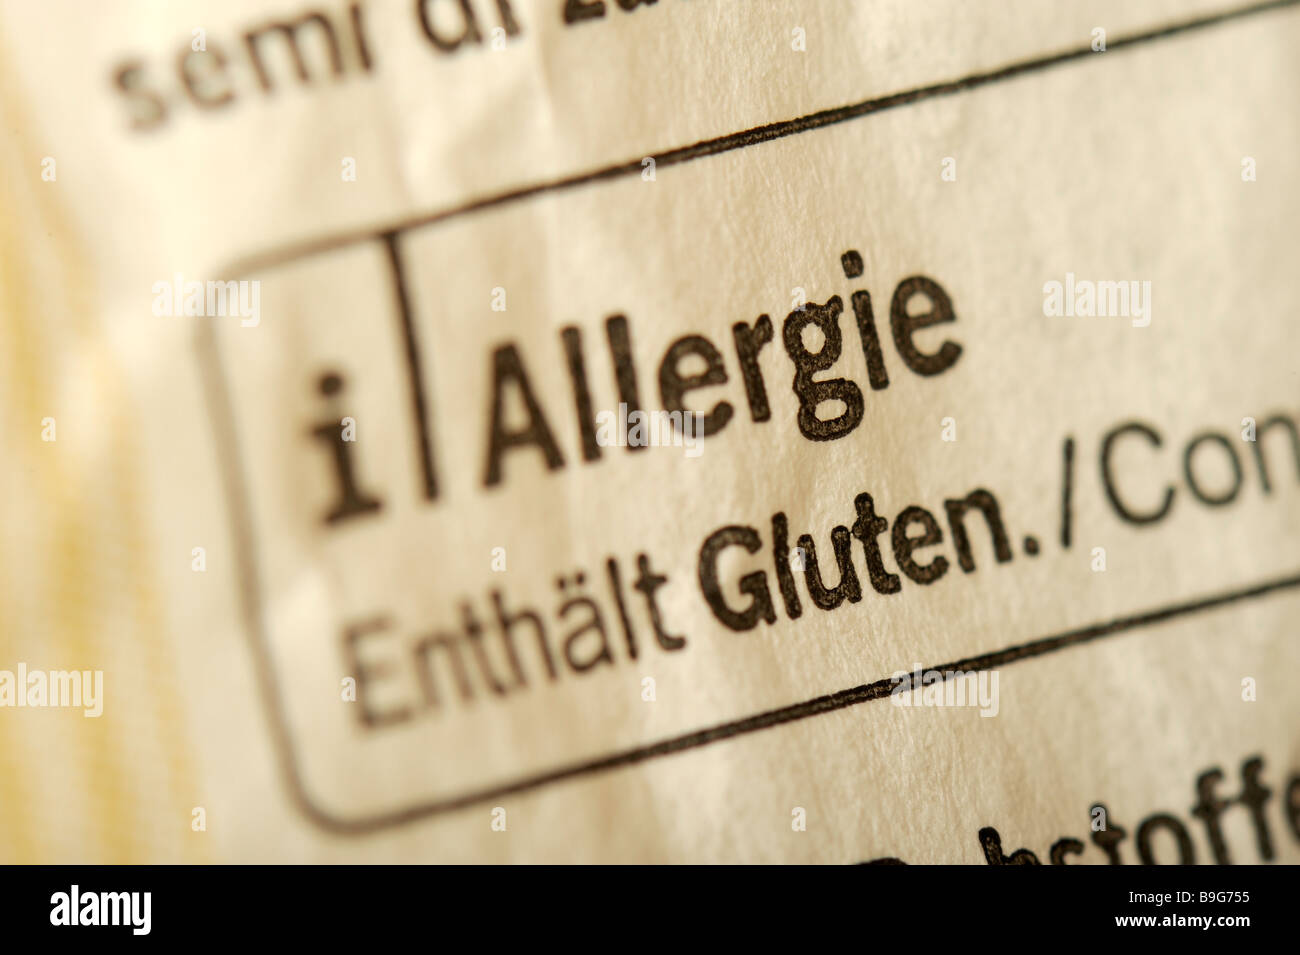 allergy. refernece to contents of allergic potential on a package of food: gluten and sesame. - Stock Image